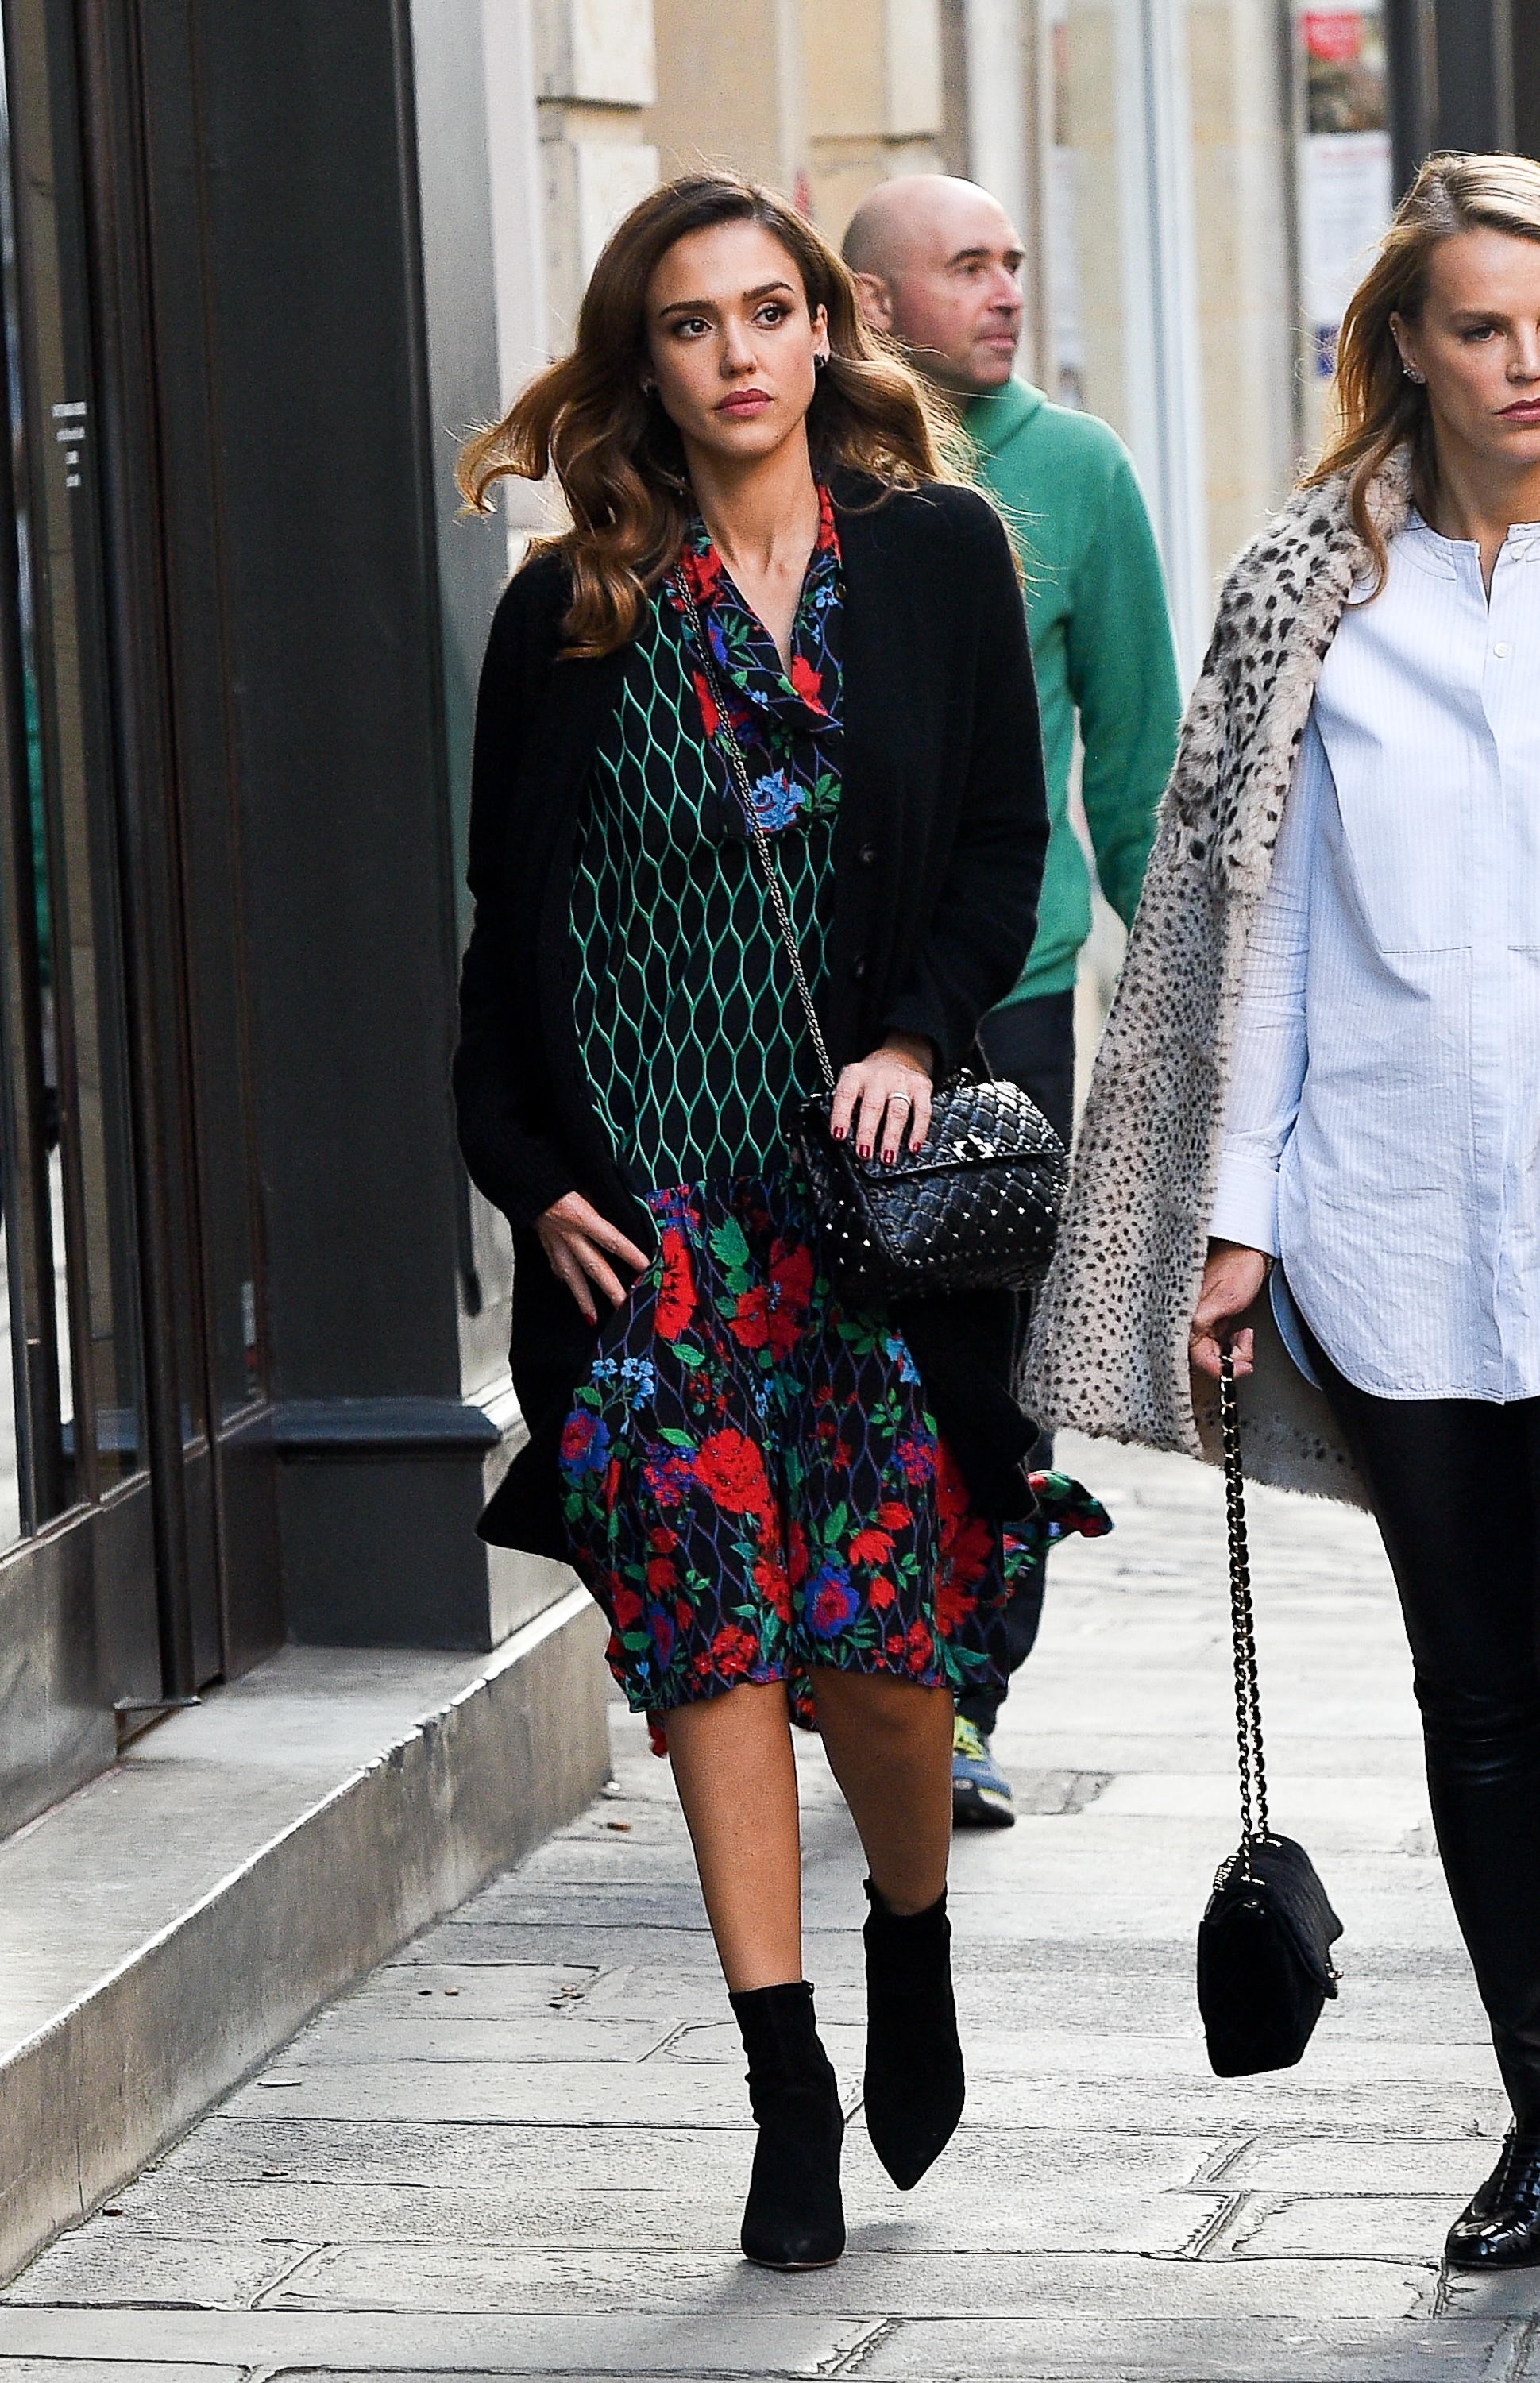 PARIS, FRANCE - OCTOBER 02:  Actress Jessica Alba is seen strolling in 'Le Marais' quarter on October 2, 2016 in Paris, France.  (Photo by Marc Piasecki/GC Images)